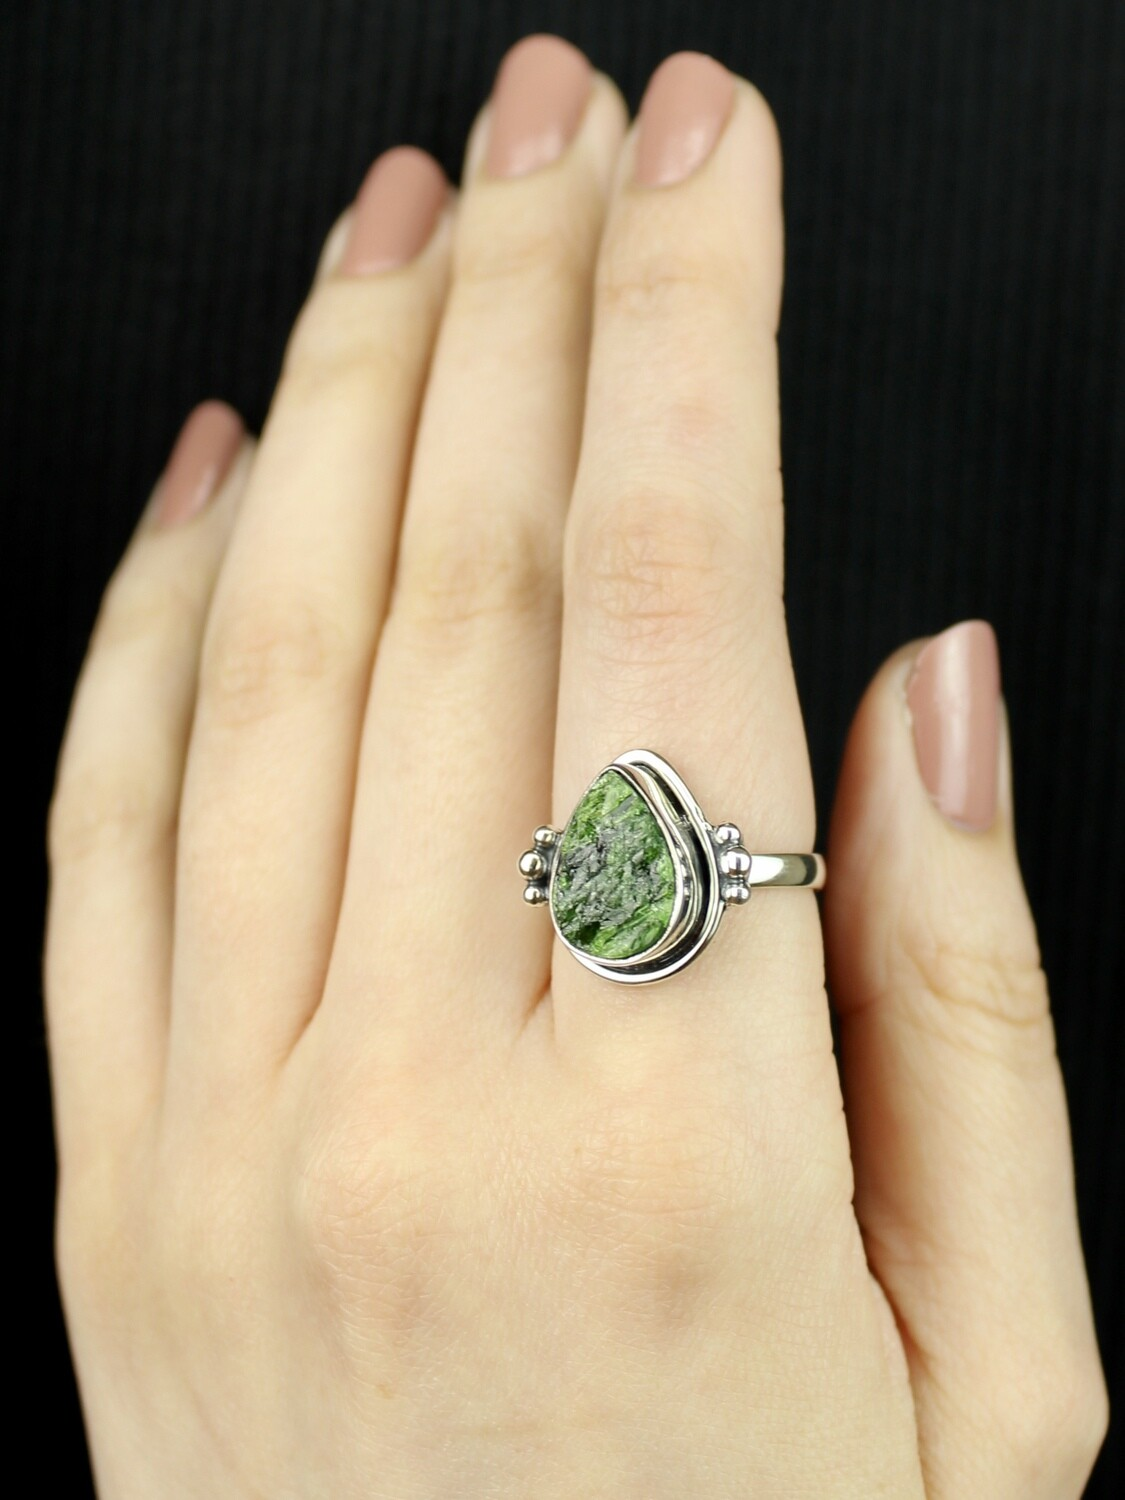 SIZE 9.25 - Sterling Silver Chrome Diopside Ring - RIG9114